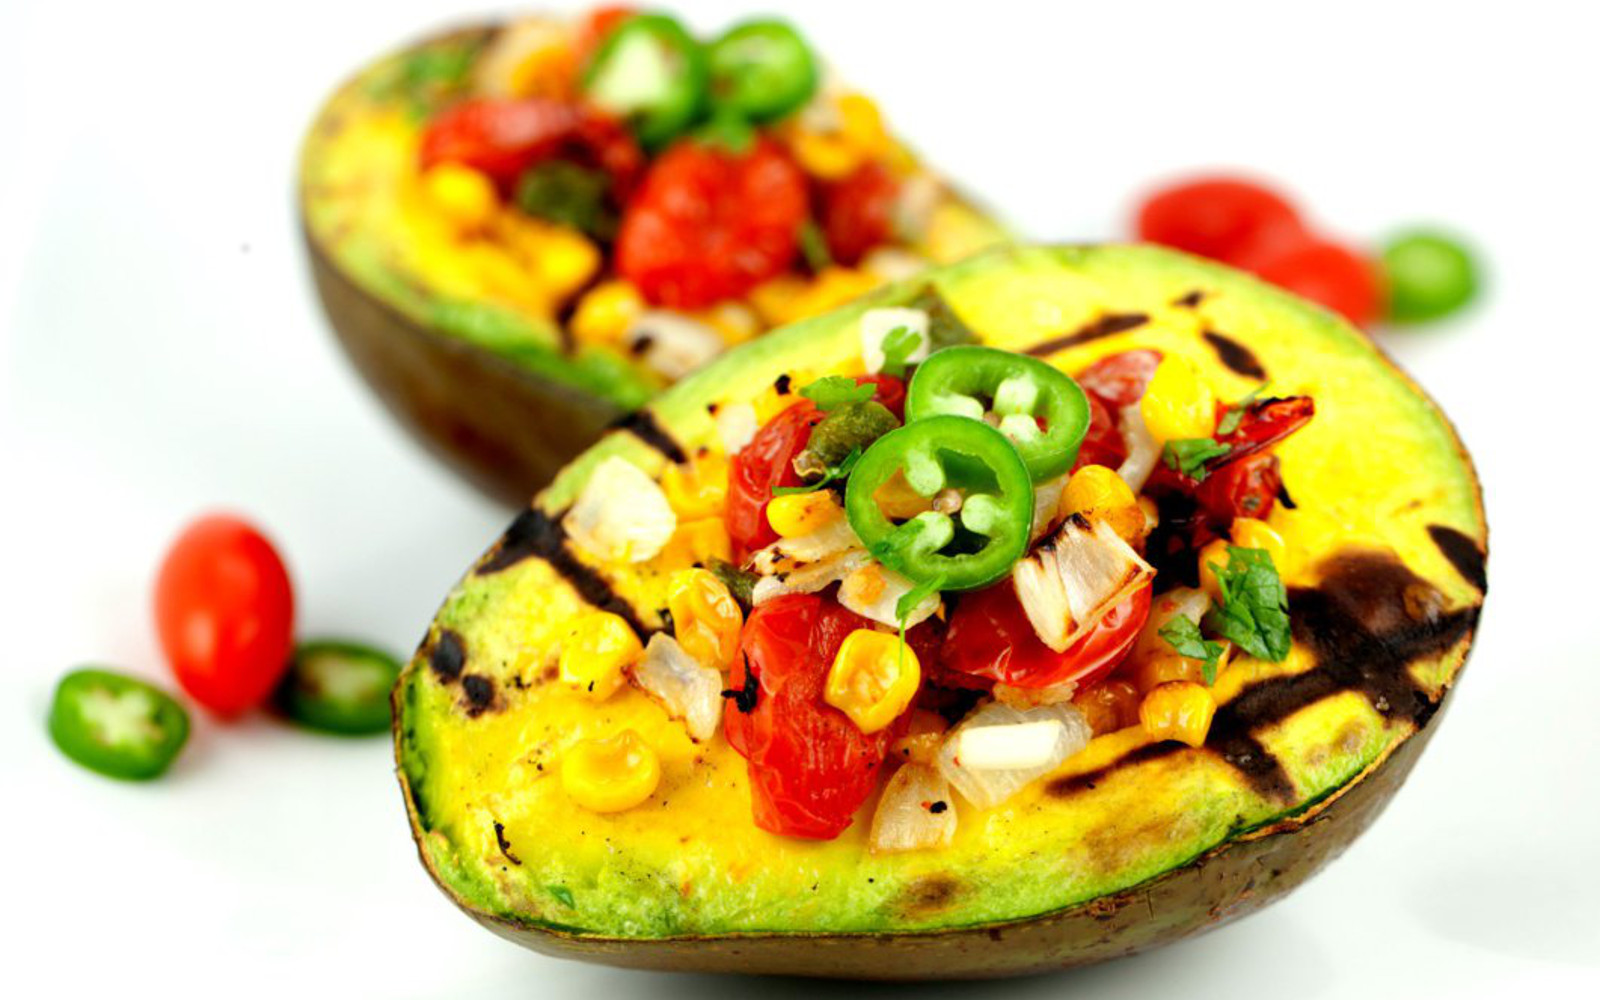 Grilled avocado with roasted tomatoes